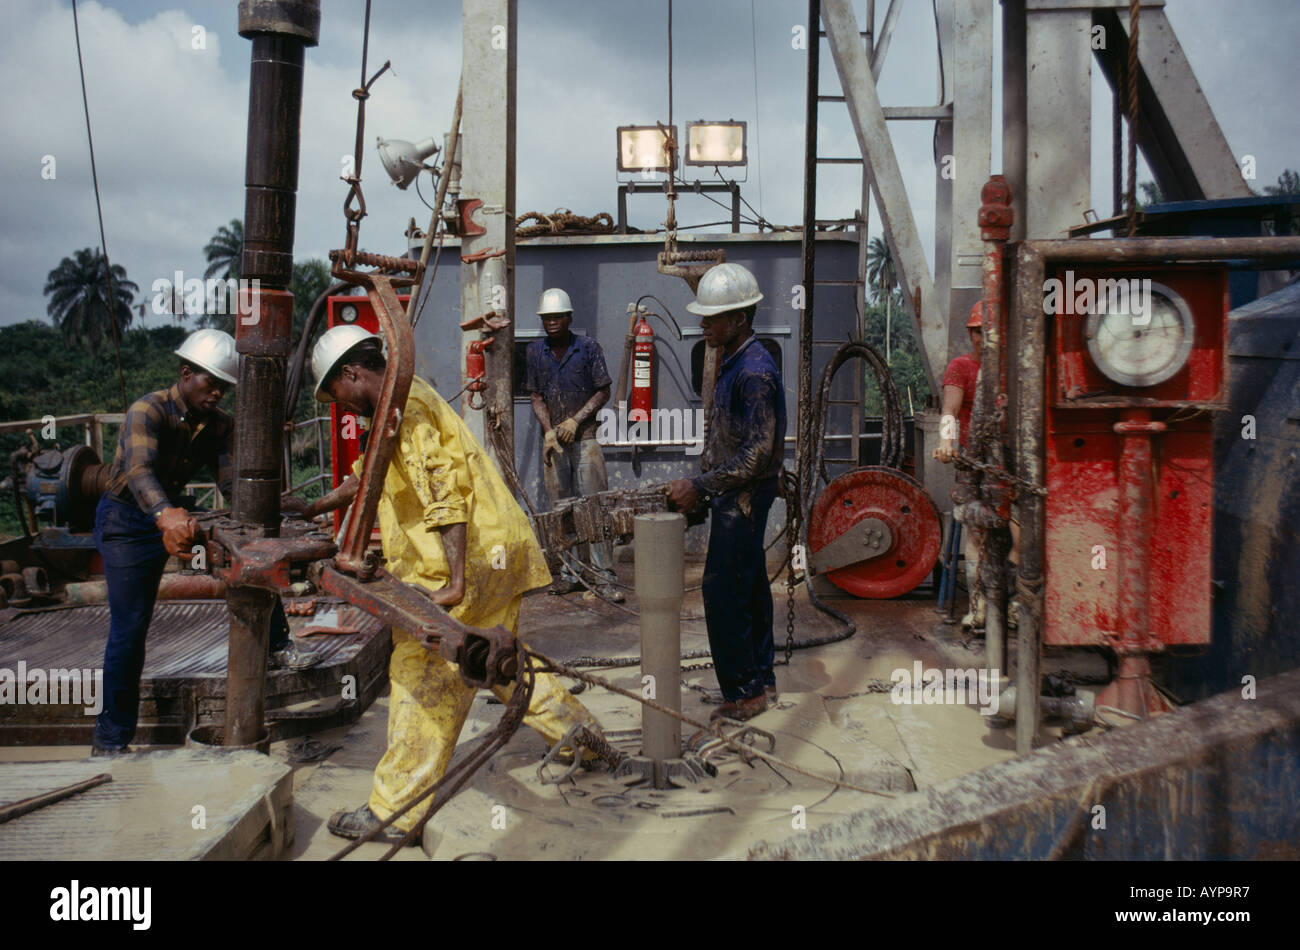 NIGERIA West Africa Rivers State Industry Workers on Shell oil rig drilling platform - Stock Image